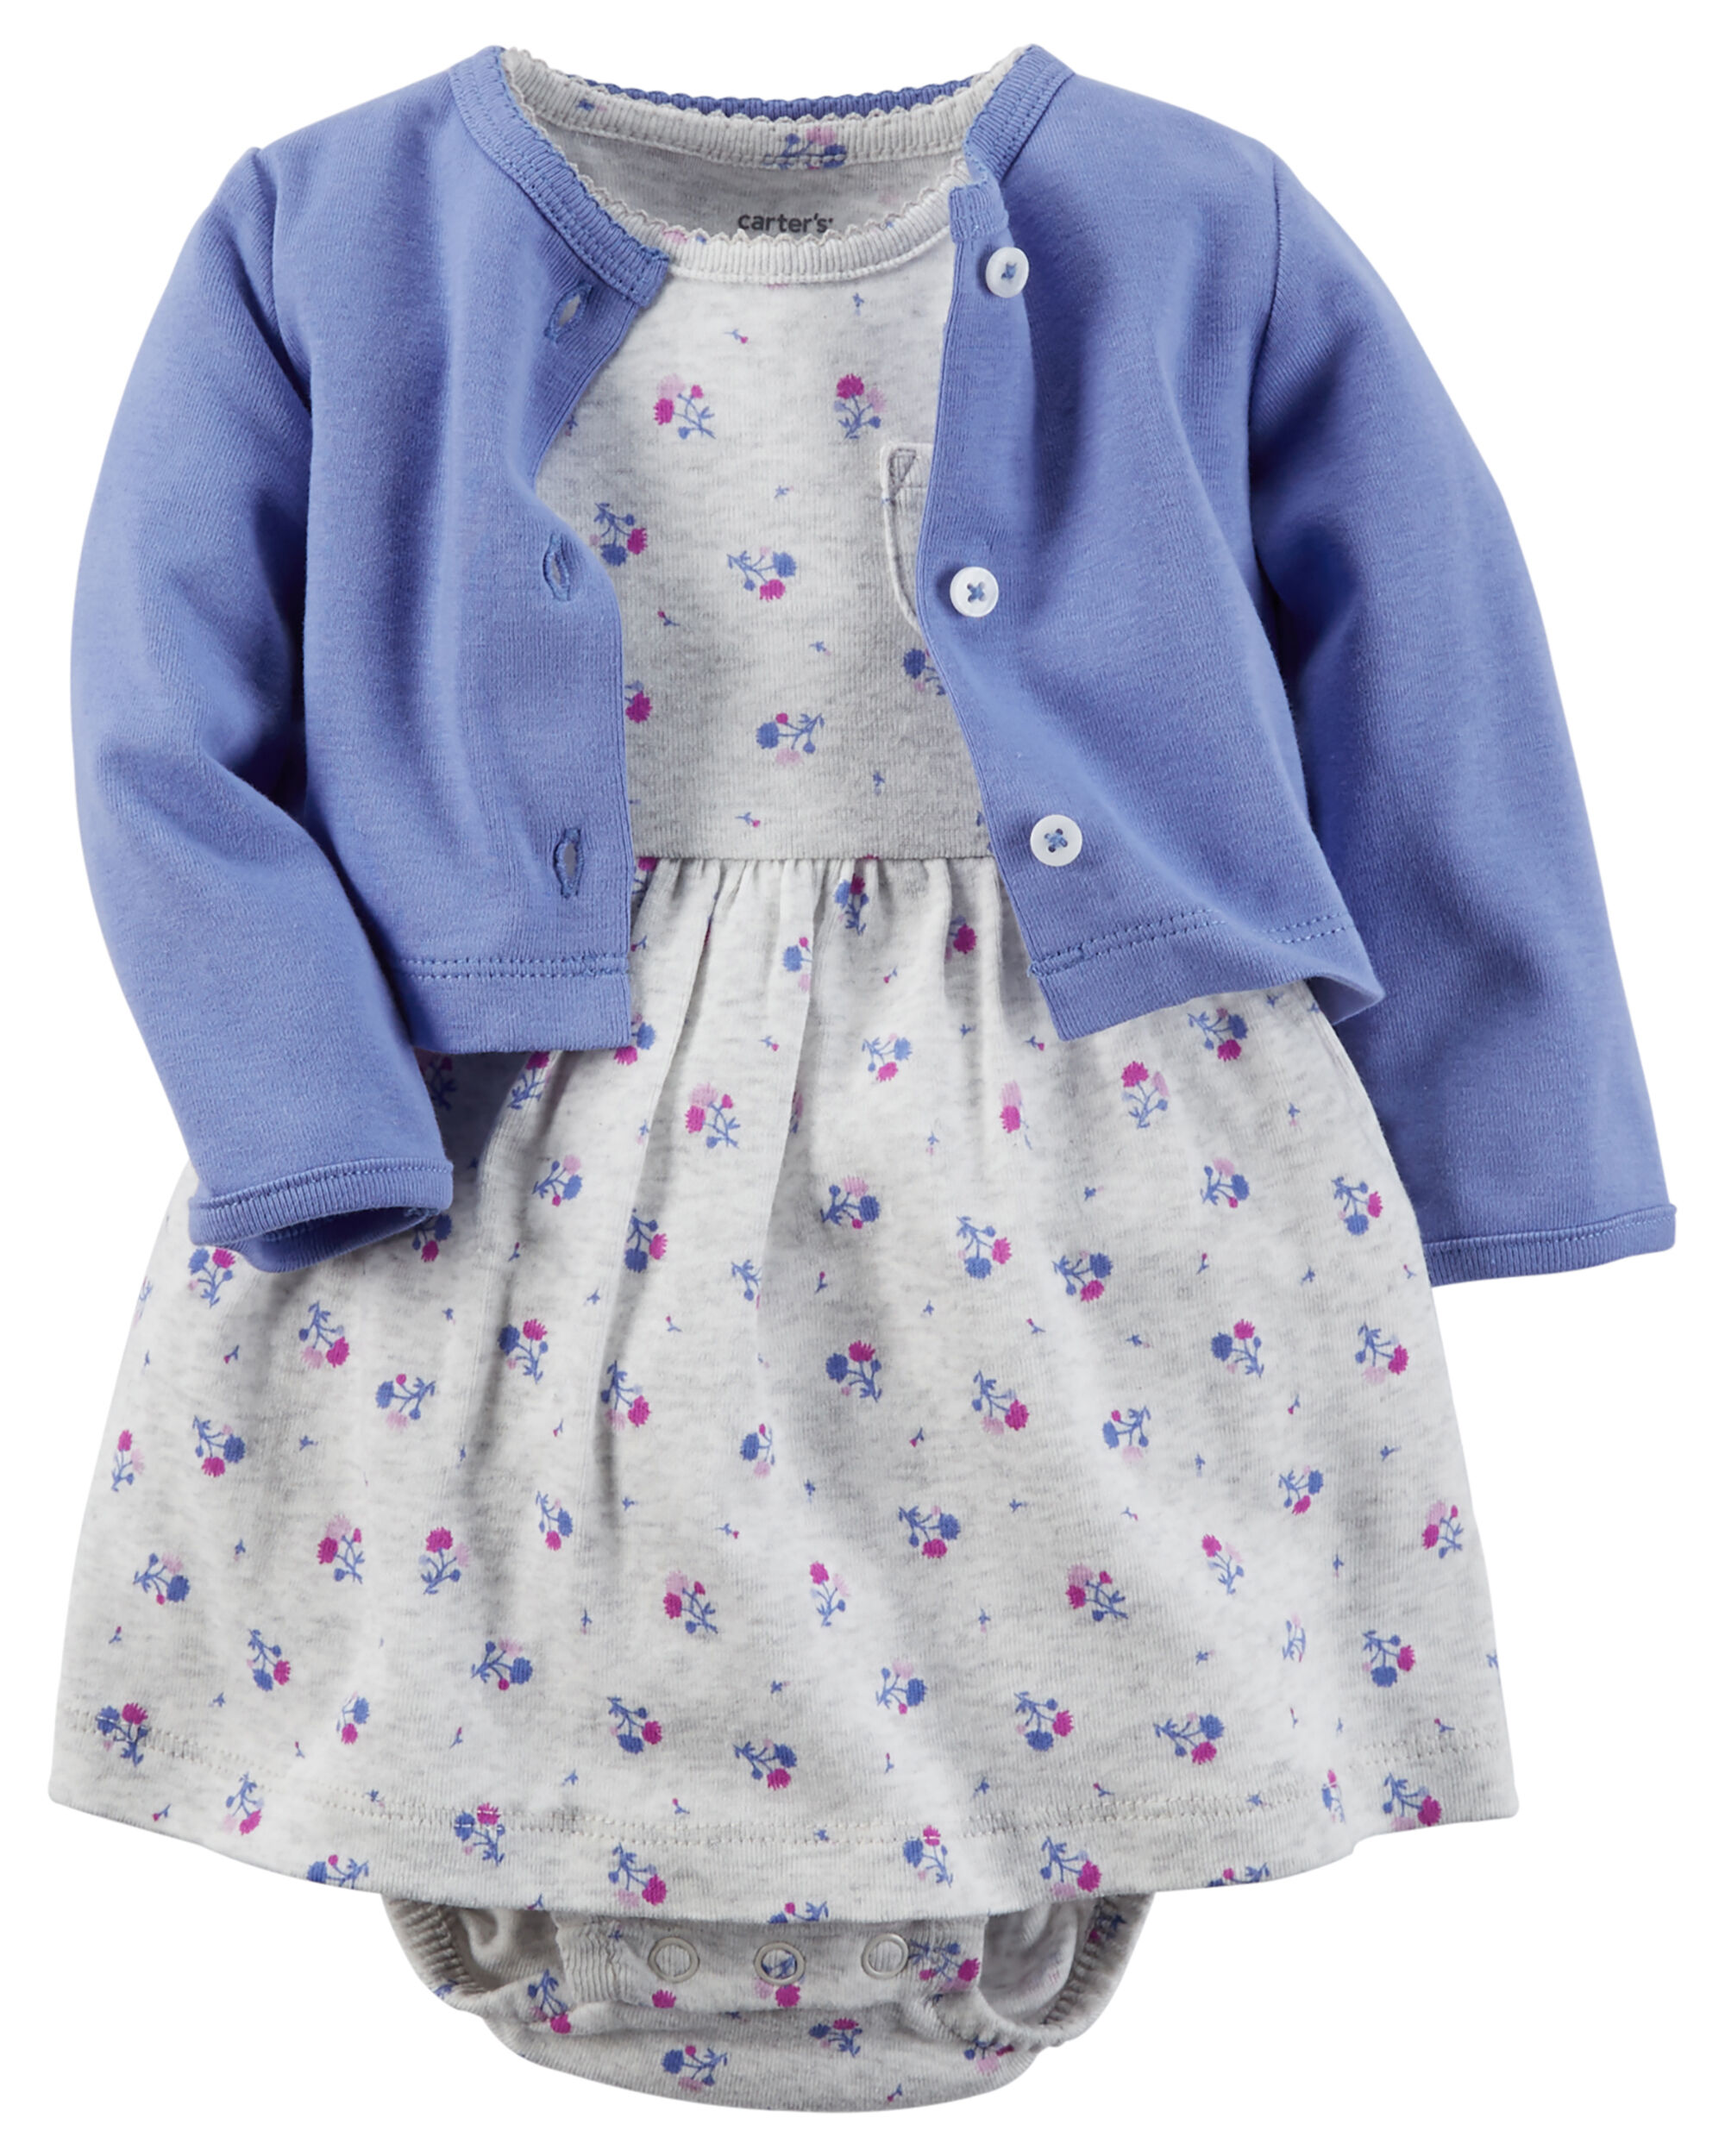 Carters Baby Dresses Newest and Cutest Baby Clothing Collection by